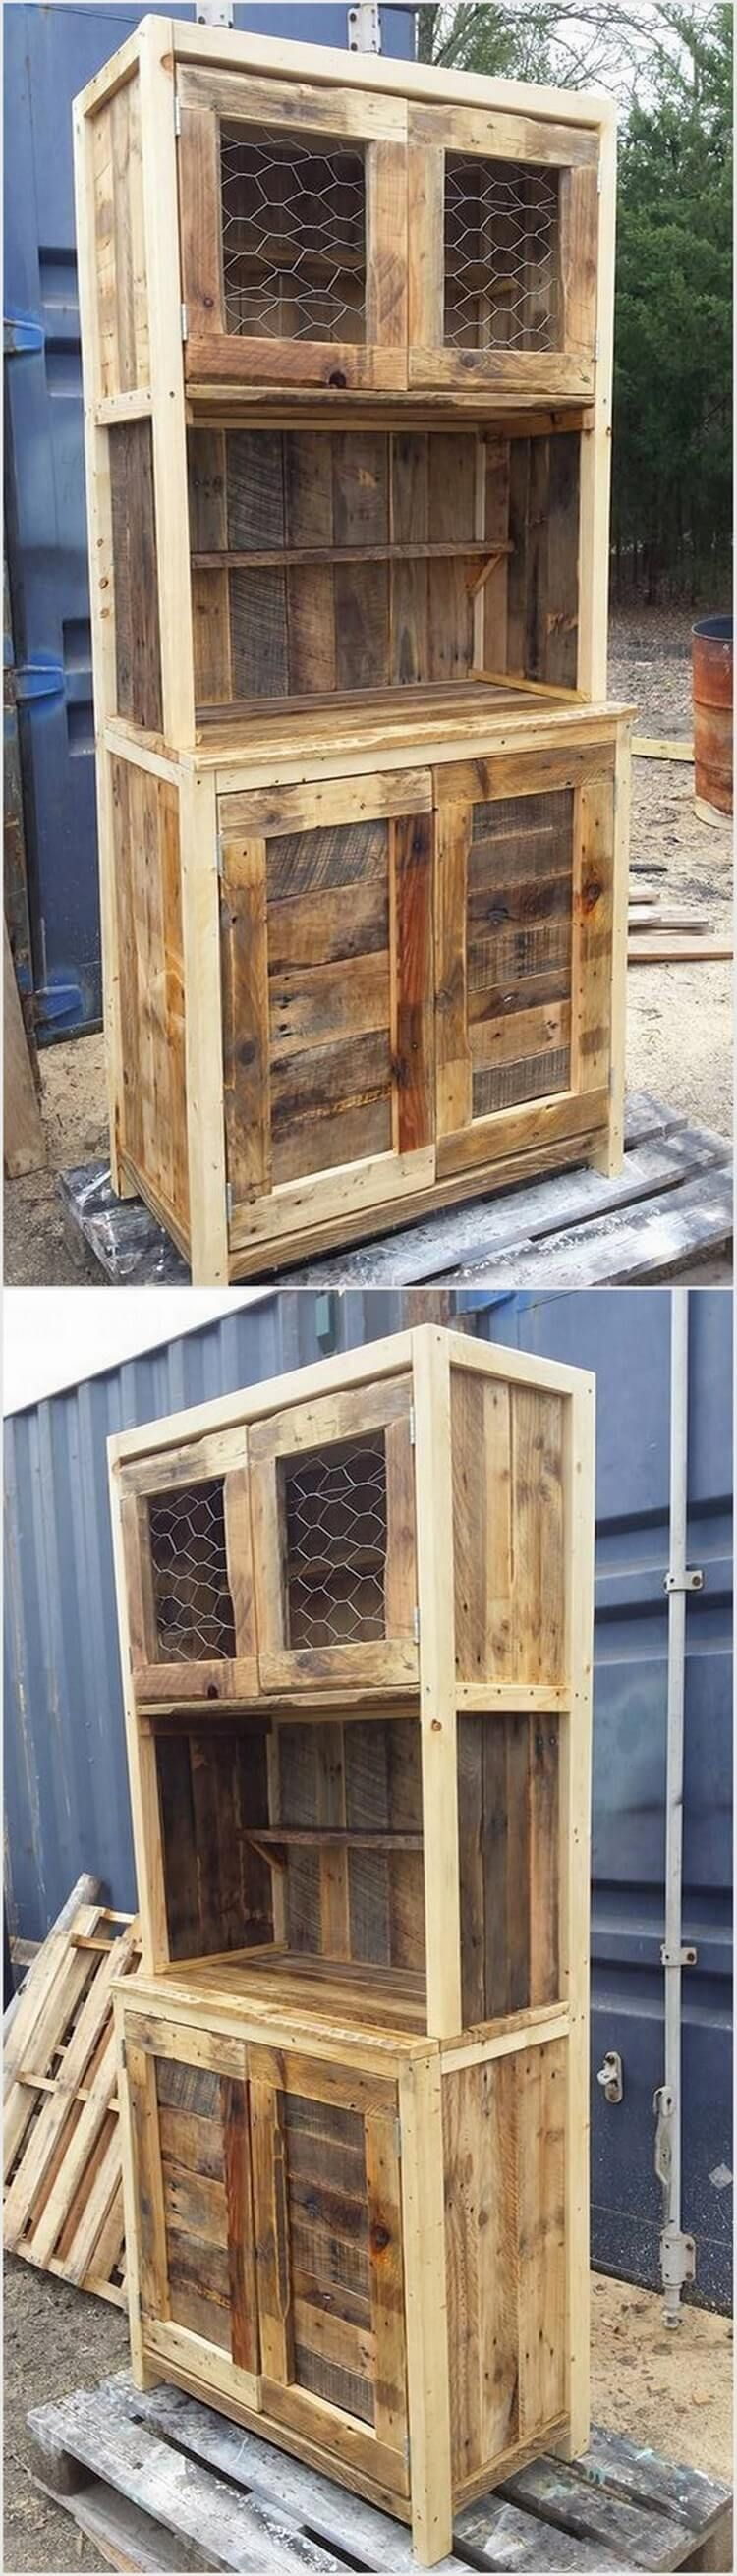 Amazing Creations With Recycled Wood Pallets Pallet